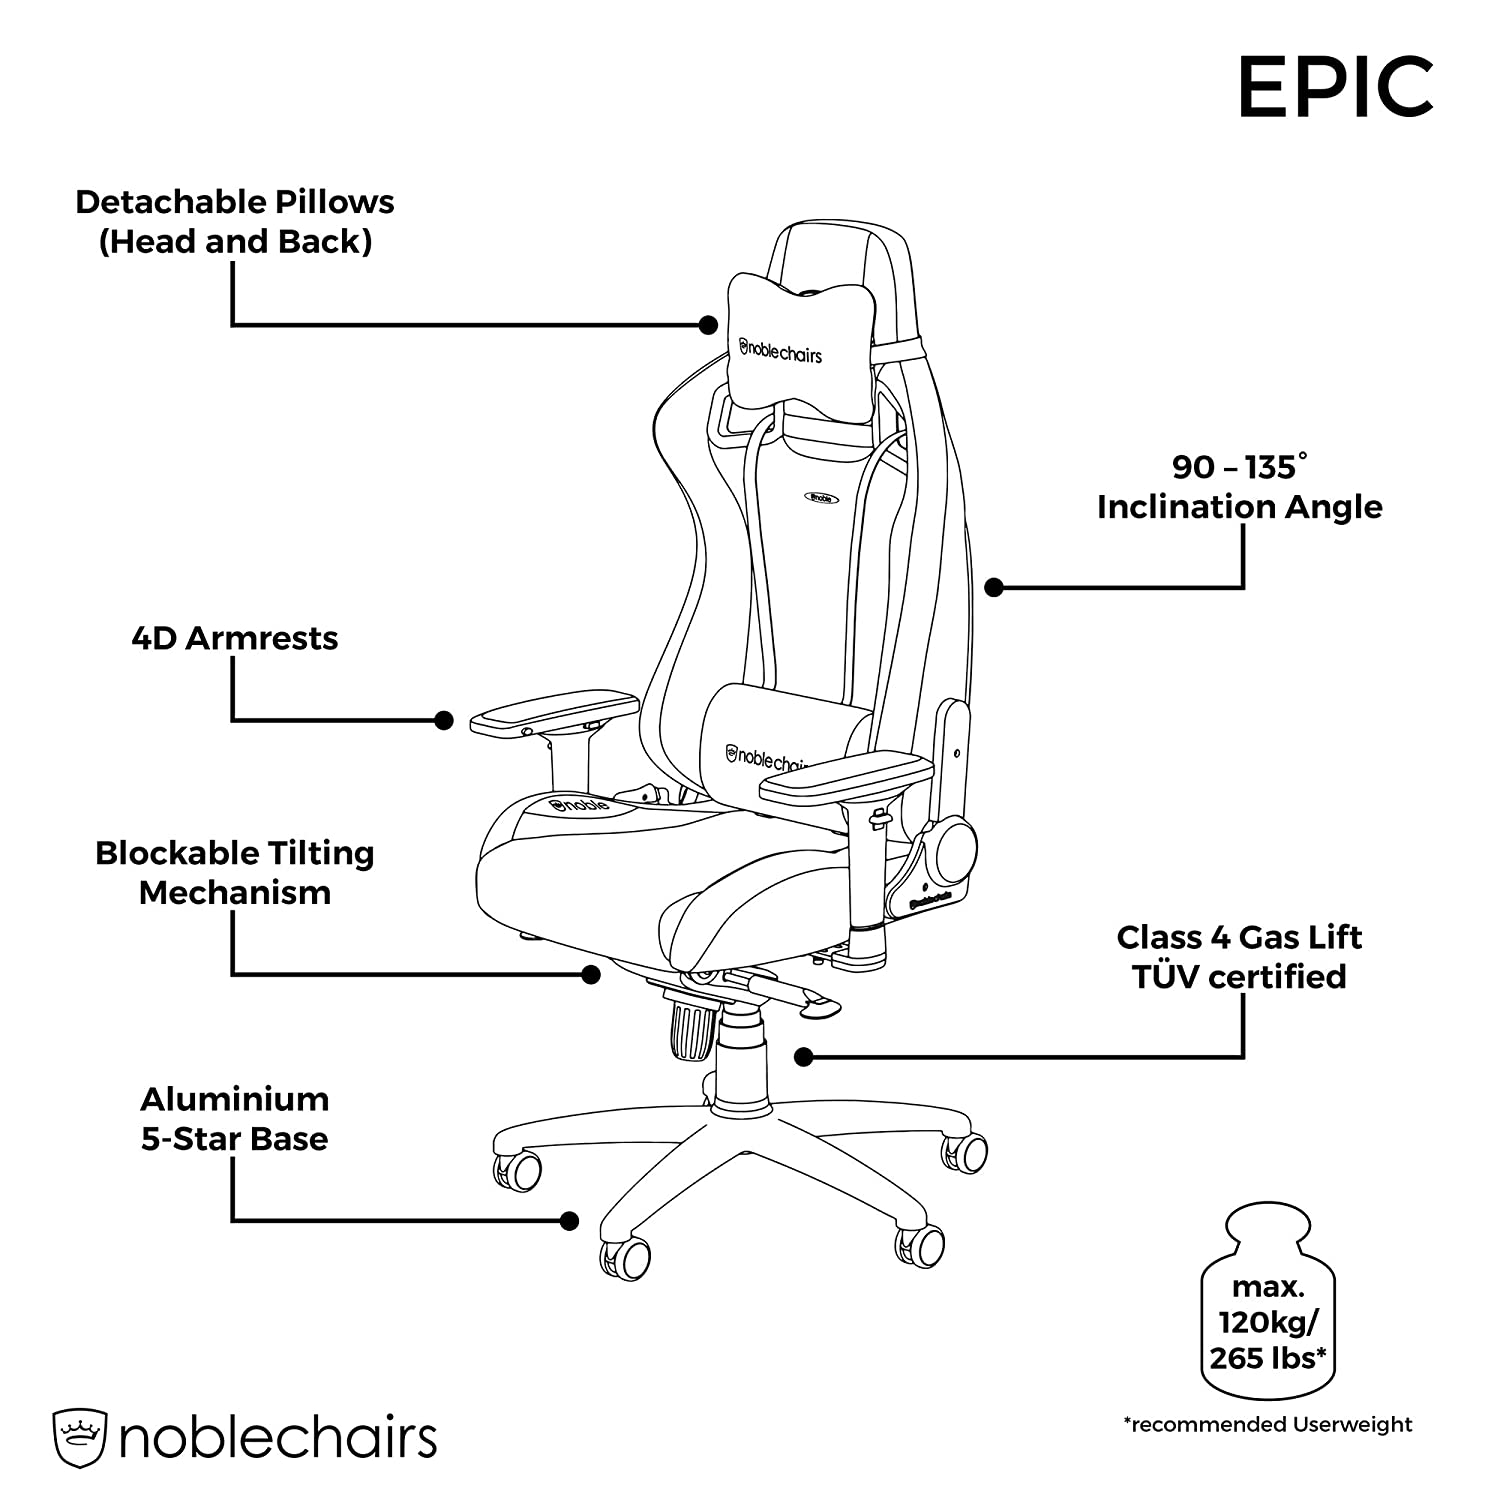 noblechairs-epic-function